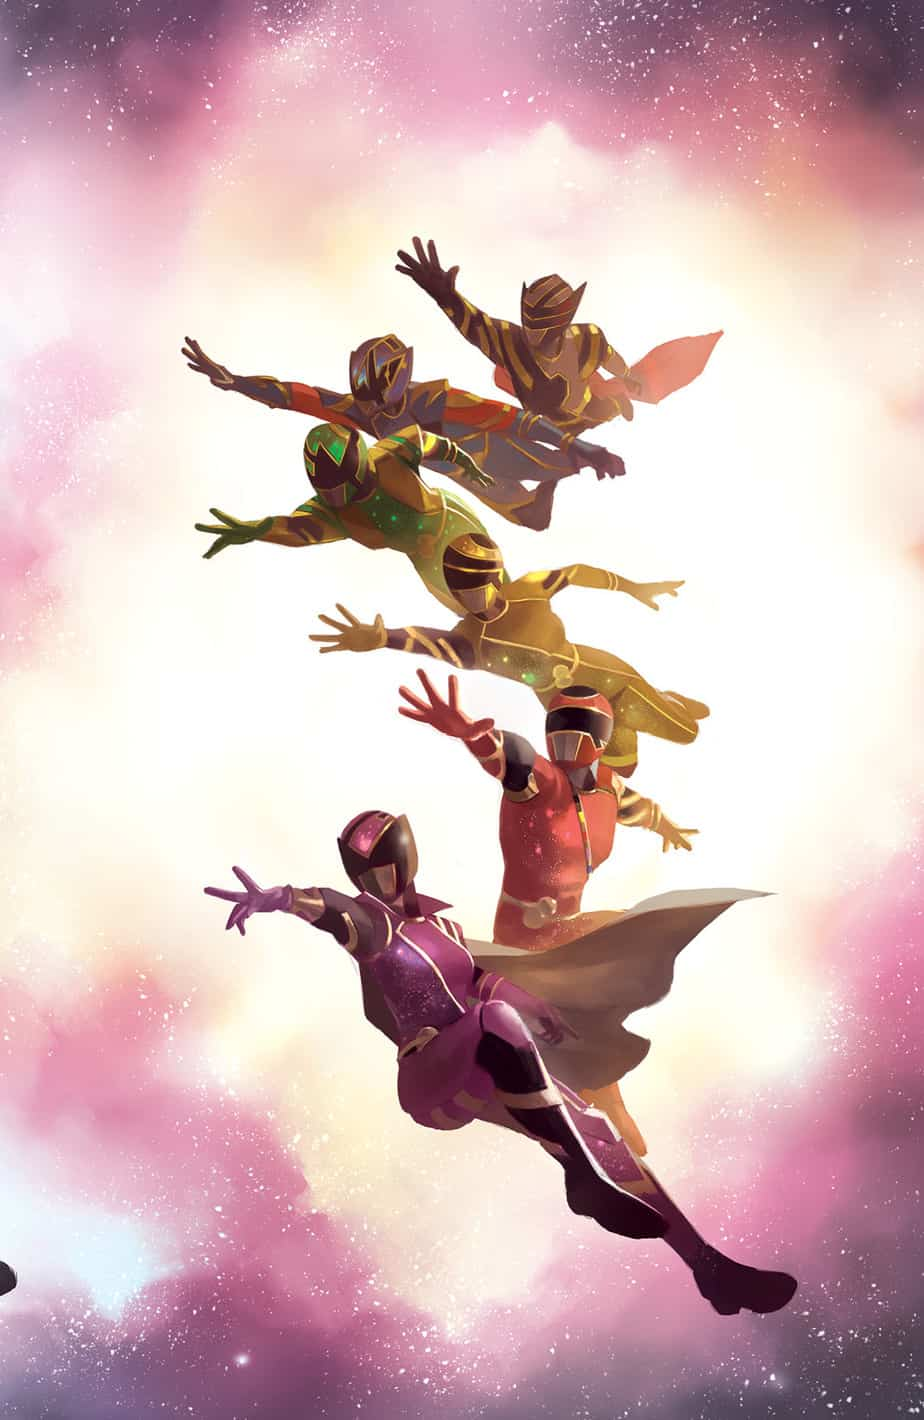 Mighty Morphin Power Rangers #39 - Unlocked Retailer Incentive Cover